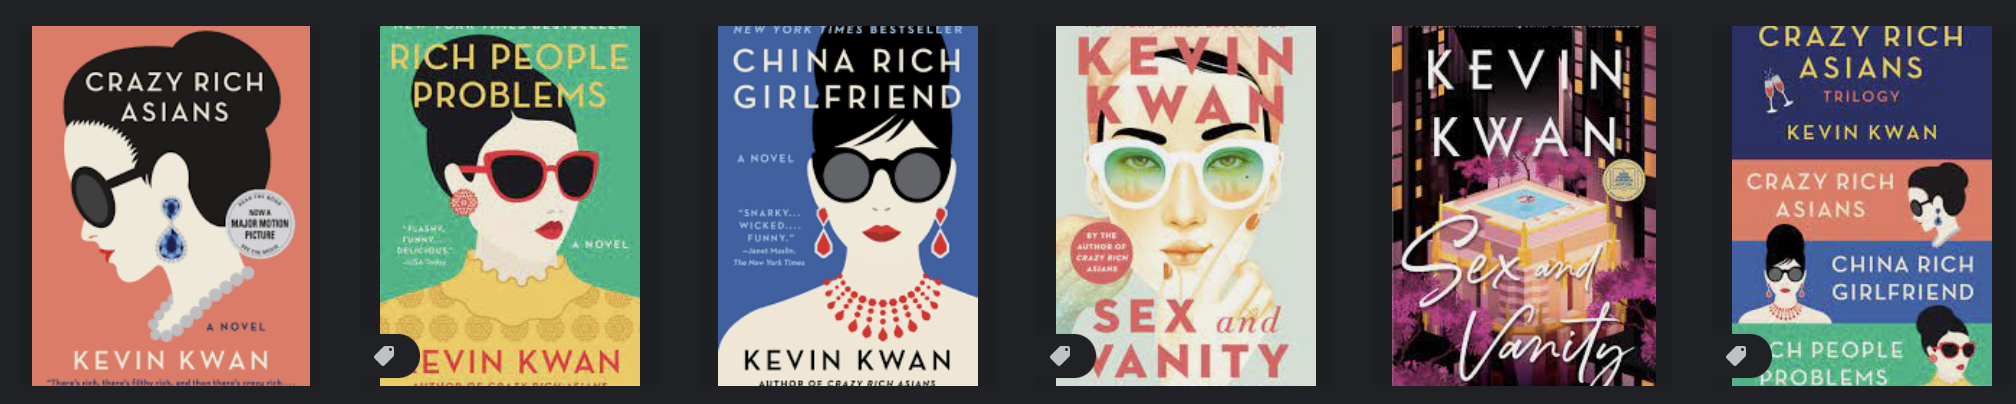 Kevin Kwan book covers